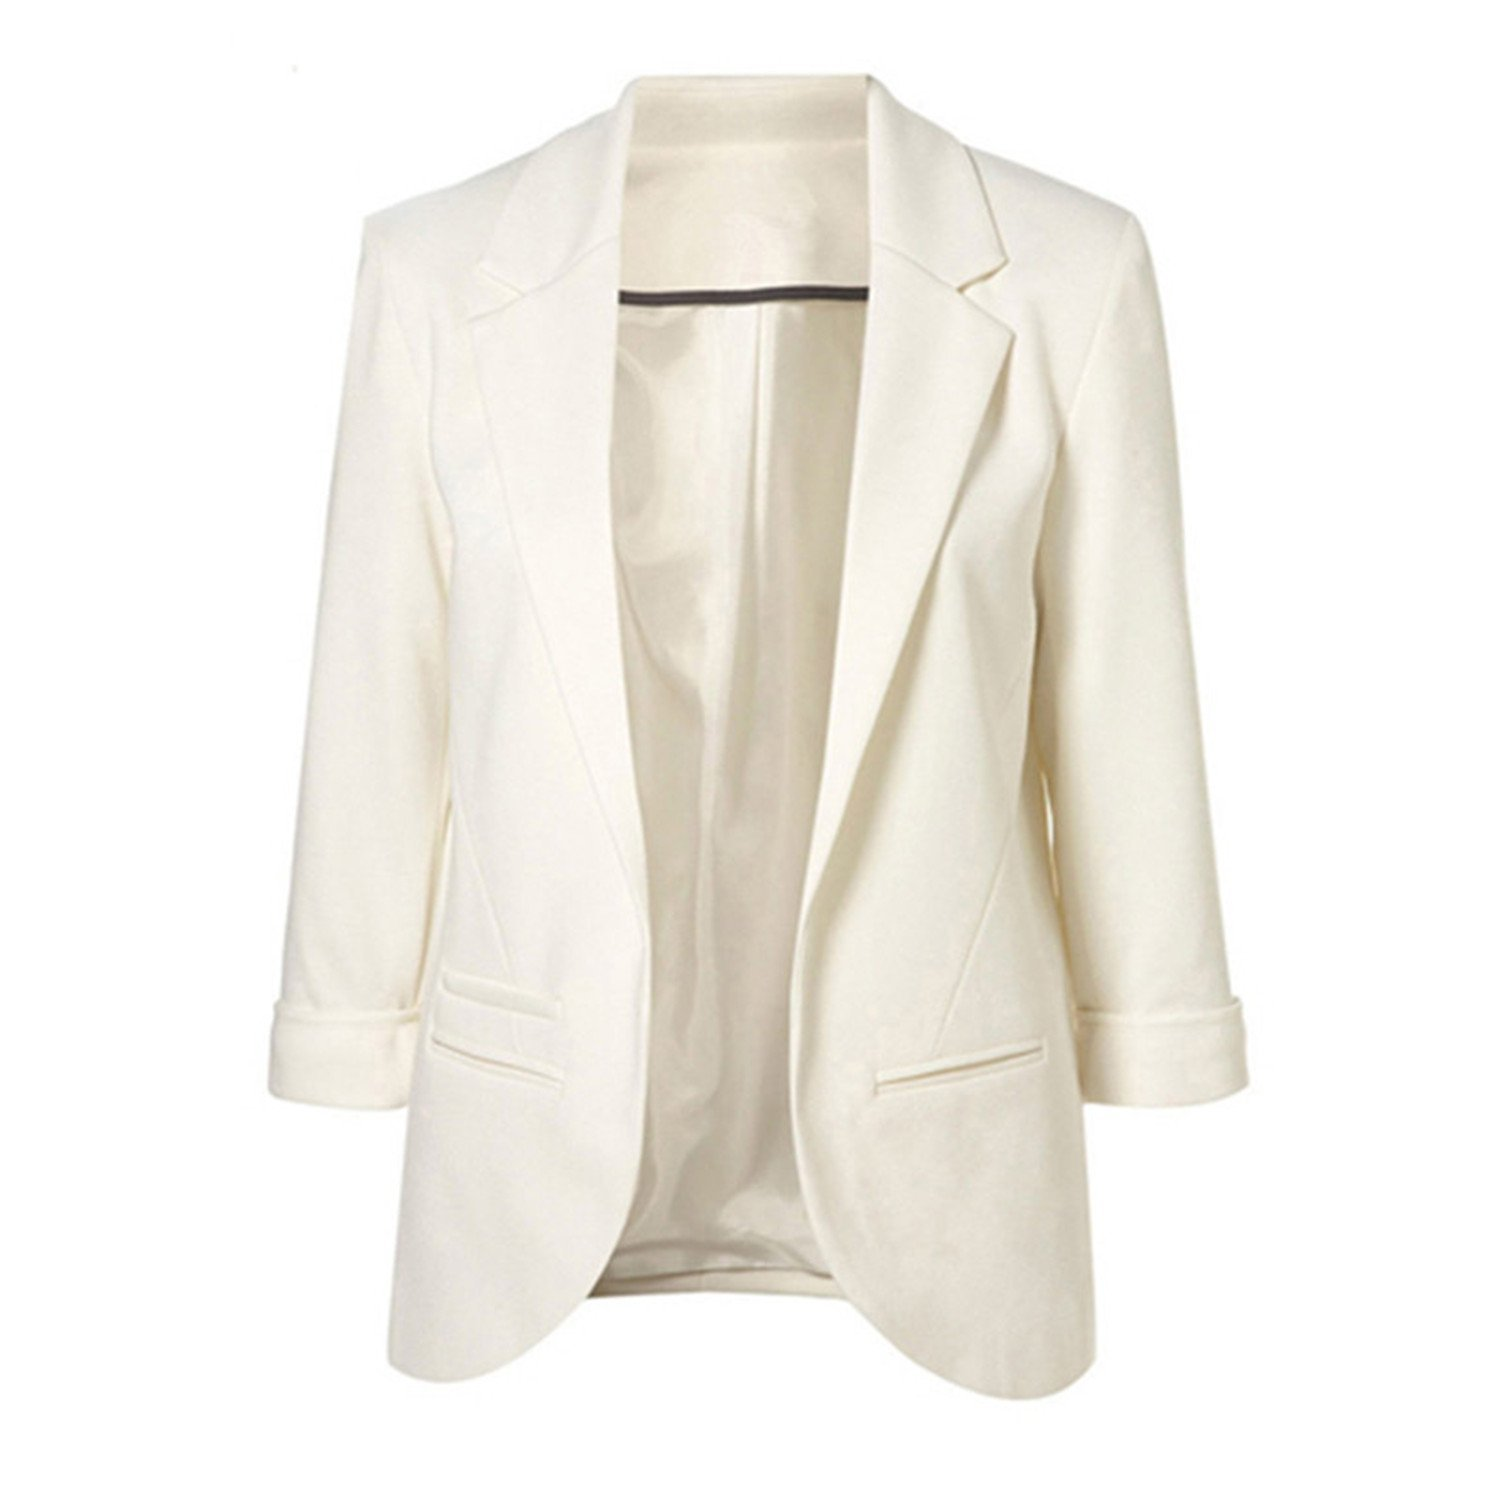 Toping Fine Blazer 3/4 Sleeve Workwear White Blazer Jackets Casual Blue Notched Blazer Outwear Overcoat Wine RedX-Large